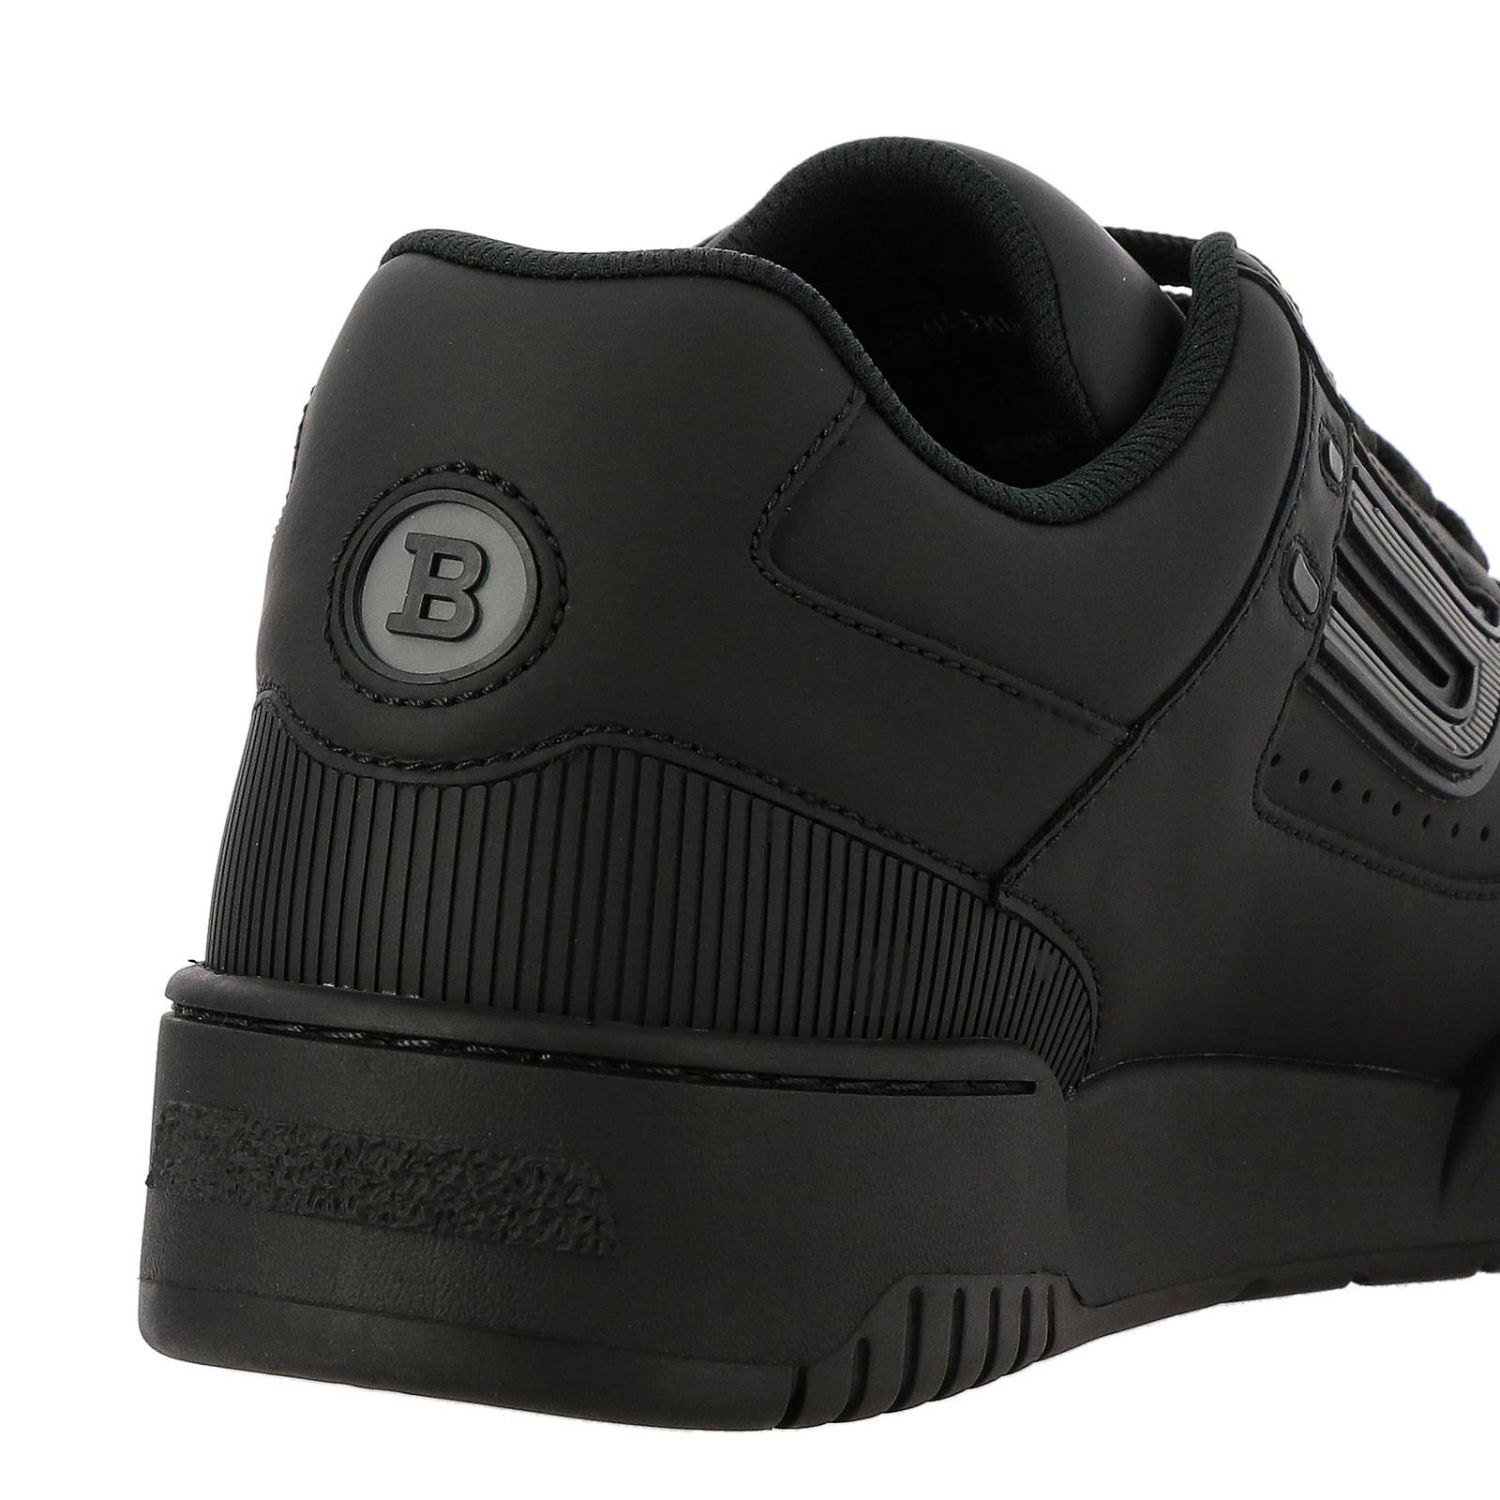 Kuba Bally sneakers in leather with micro holes and maxi rubber logo black 5